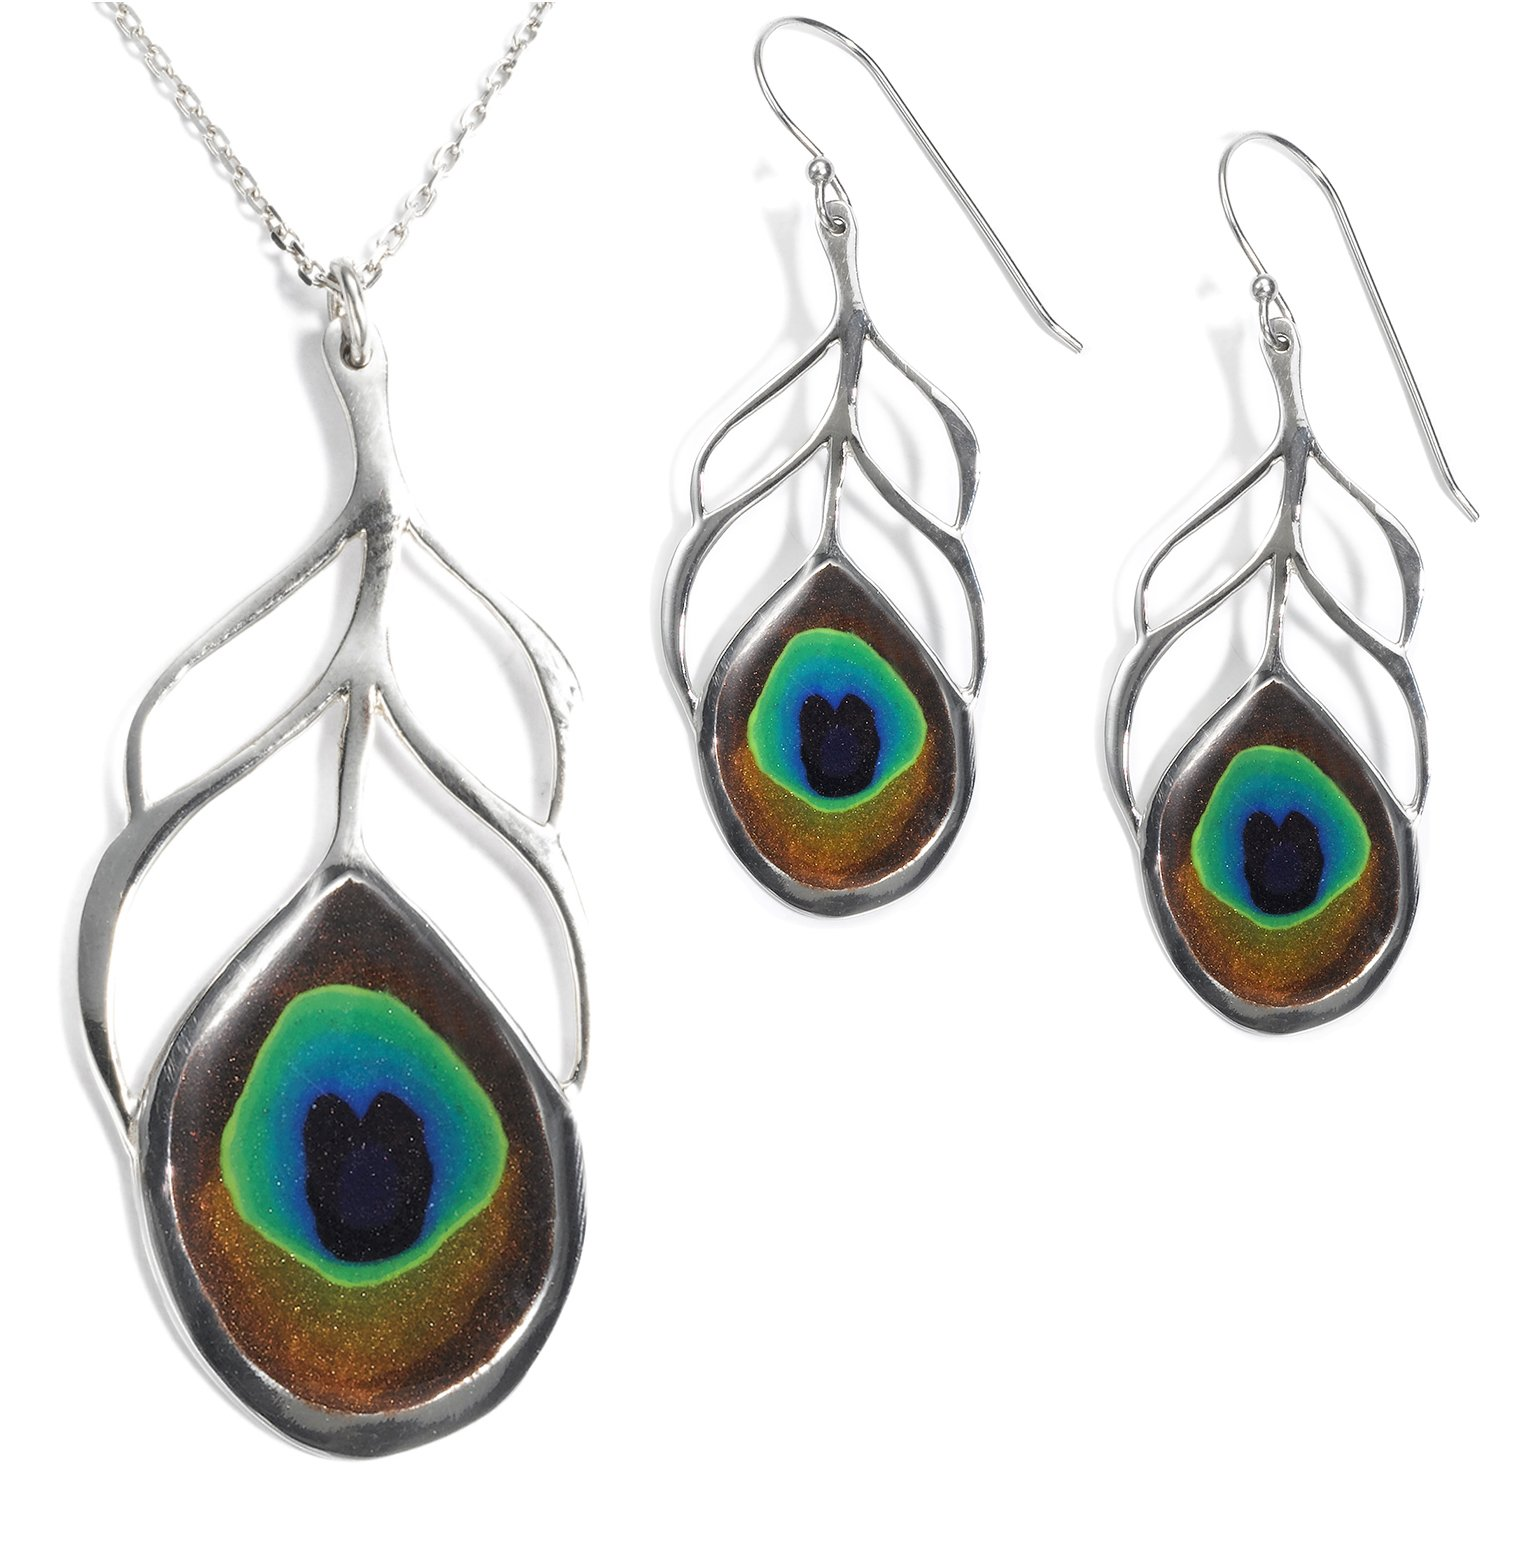 925 Sterling Silver Peacock Feather Necklace Pendant and Drop Earrings Polymer Clay Handmade Jewelry Set, 16.5''